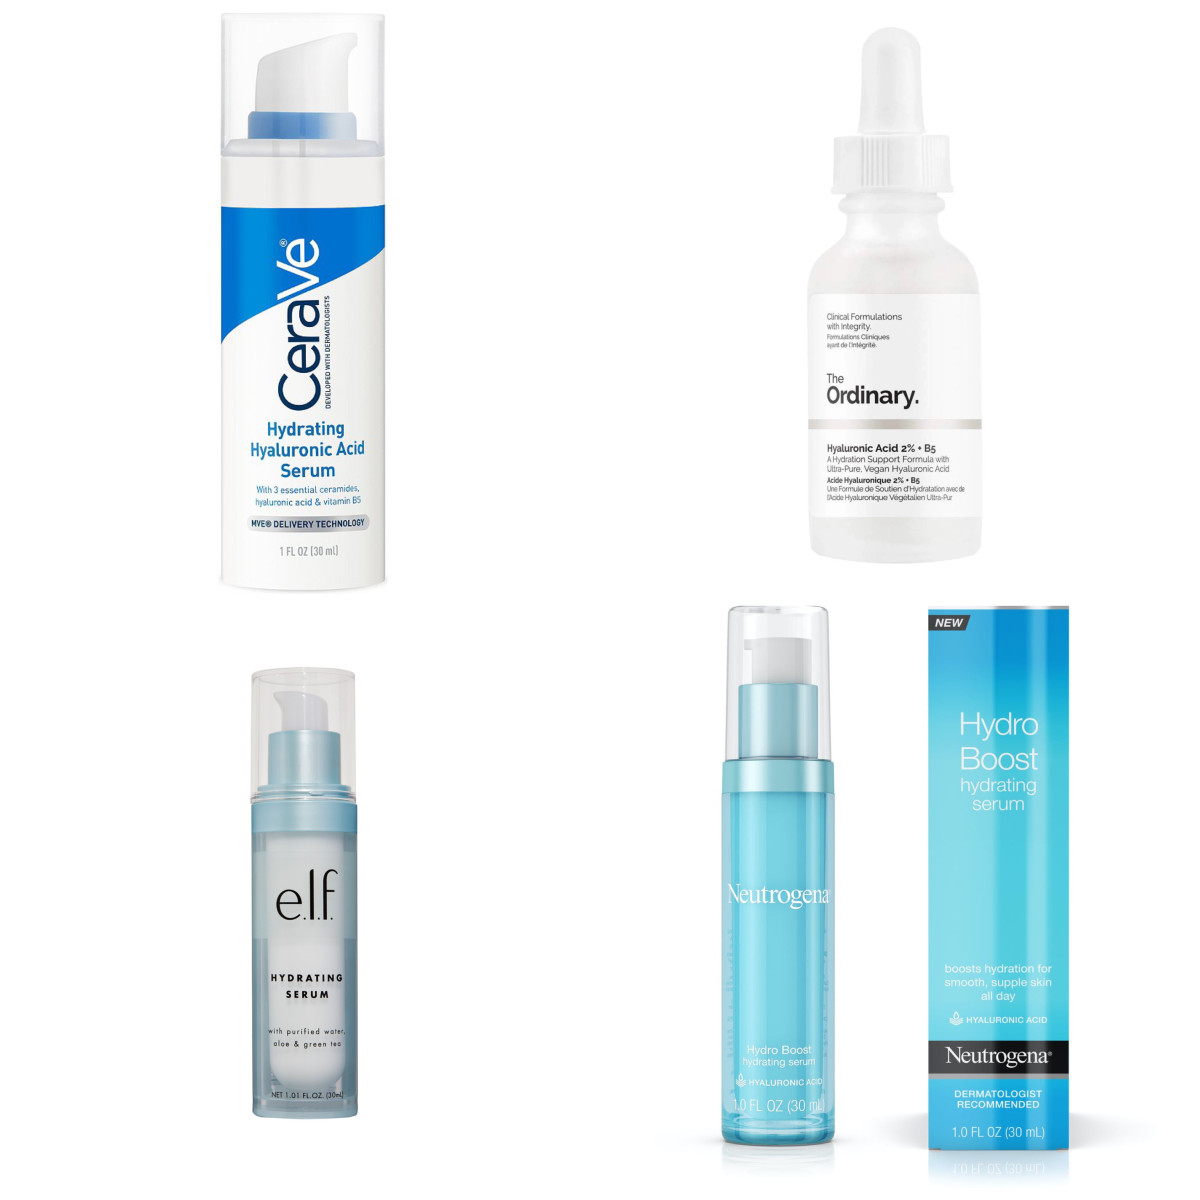 top-10-best-drugstore-skincare-brands